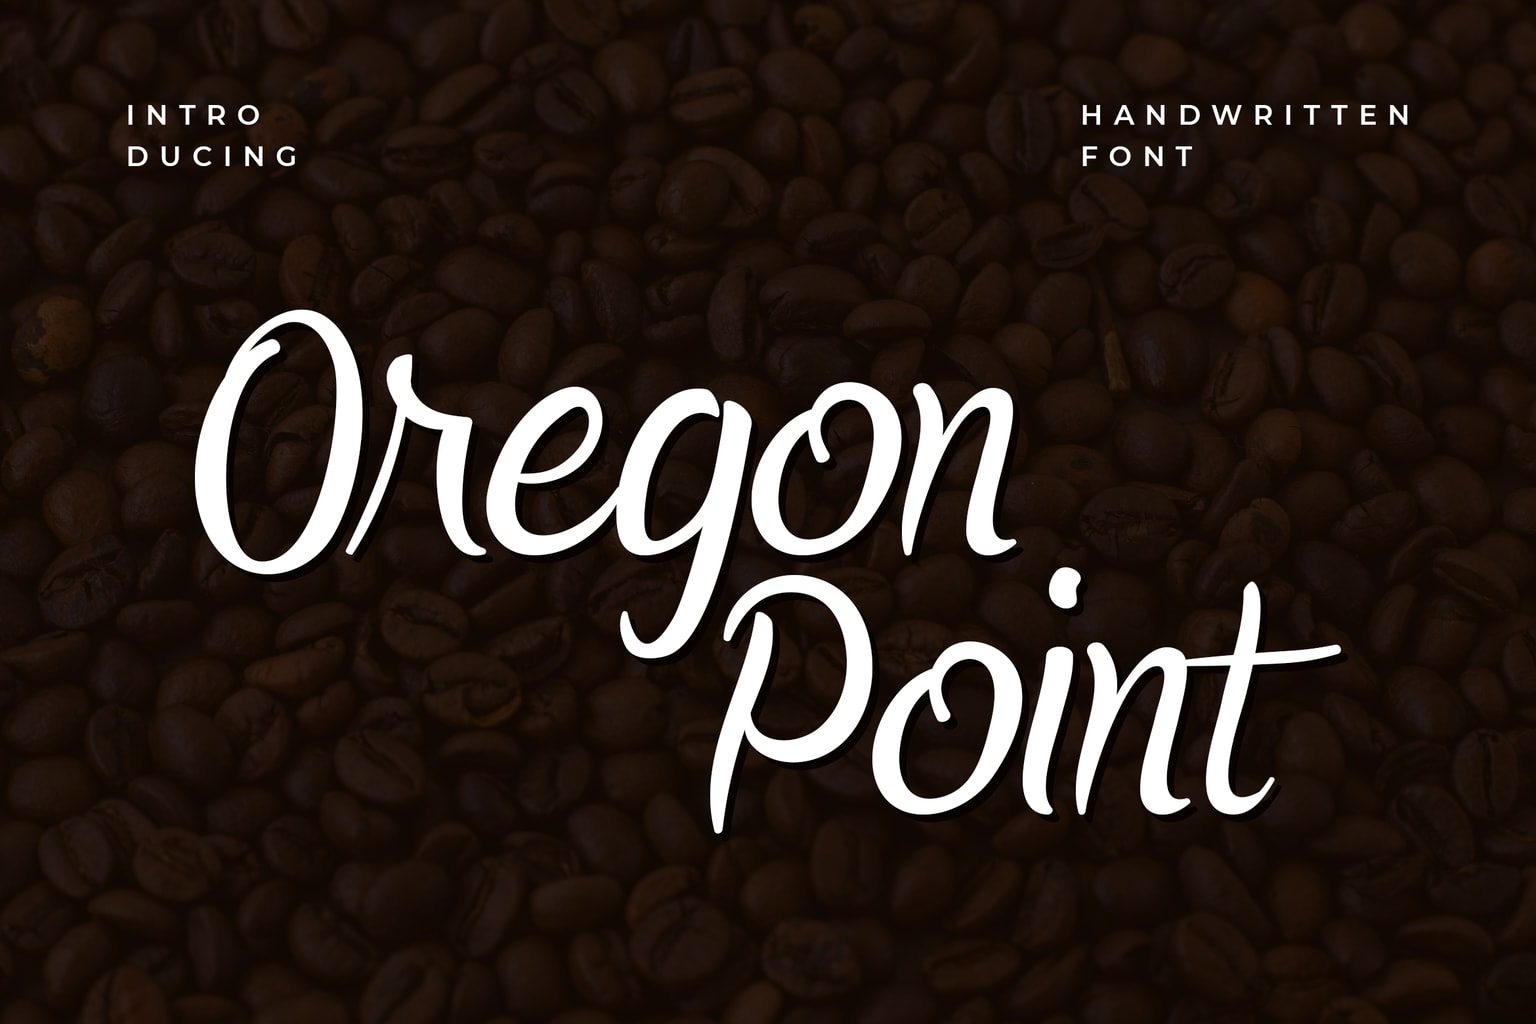 fonts oregon point handwritten